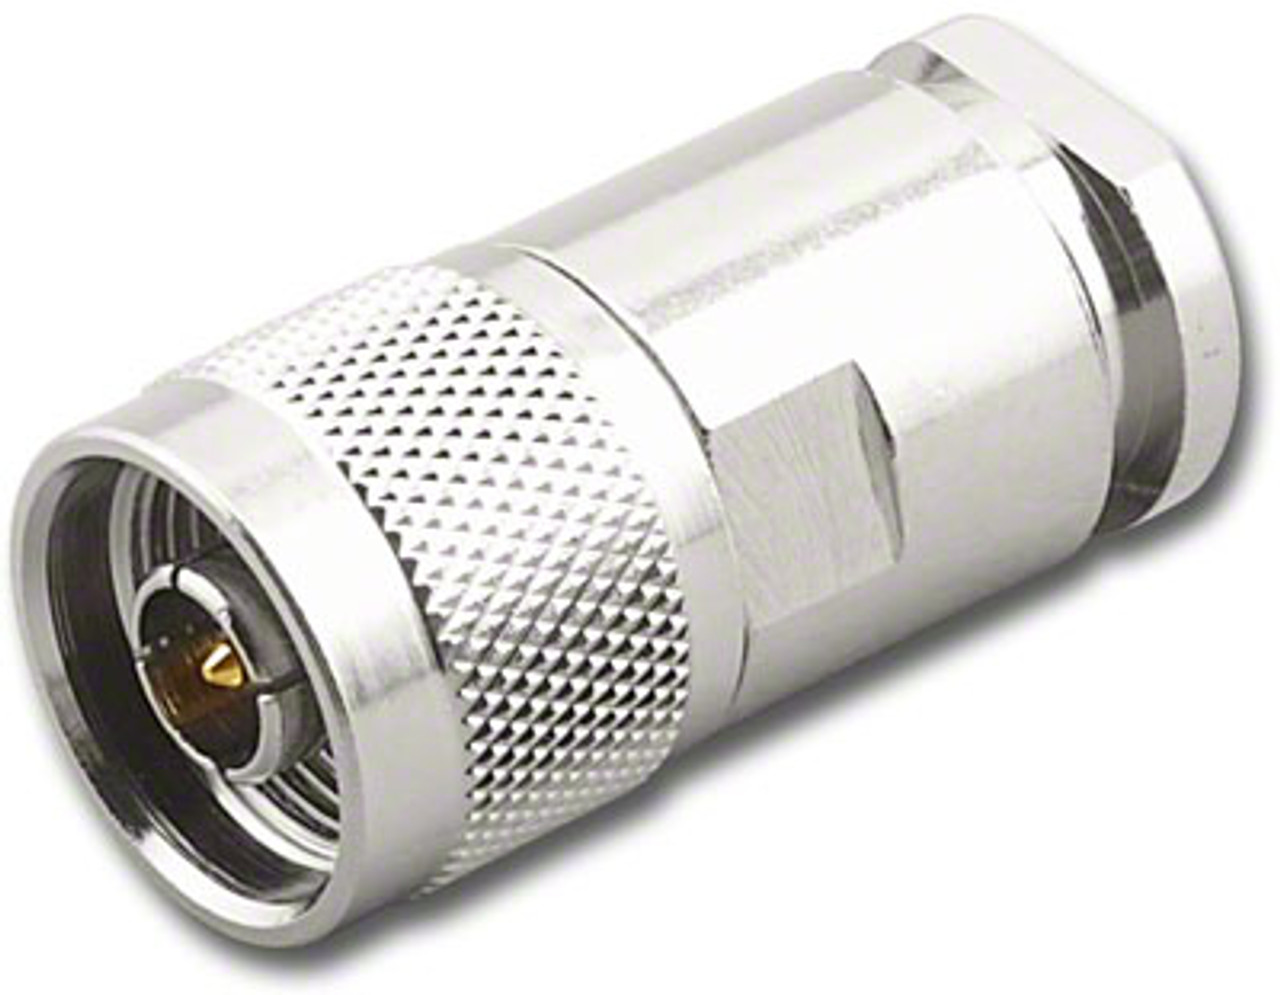 Type N-Male Coaxial Connector for RG-8 Coax Cable - RFN-7661-RG8